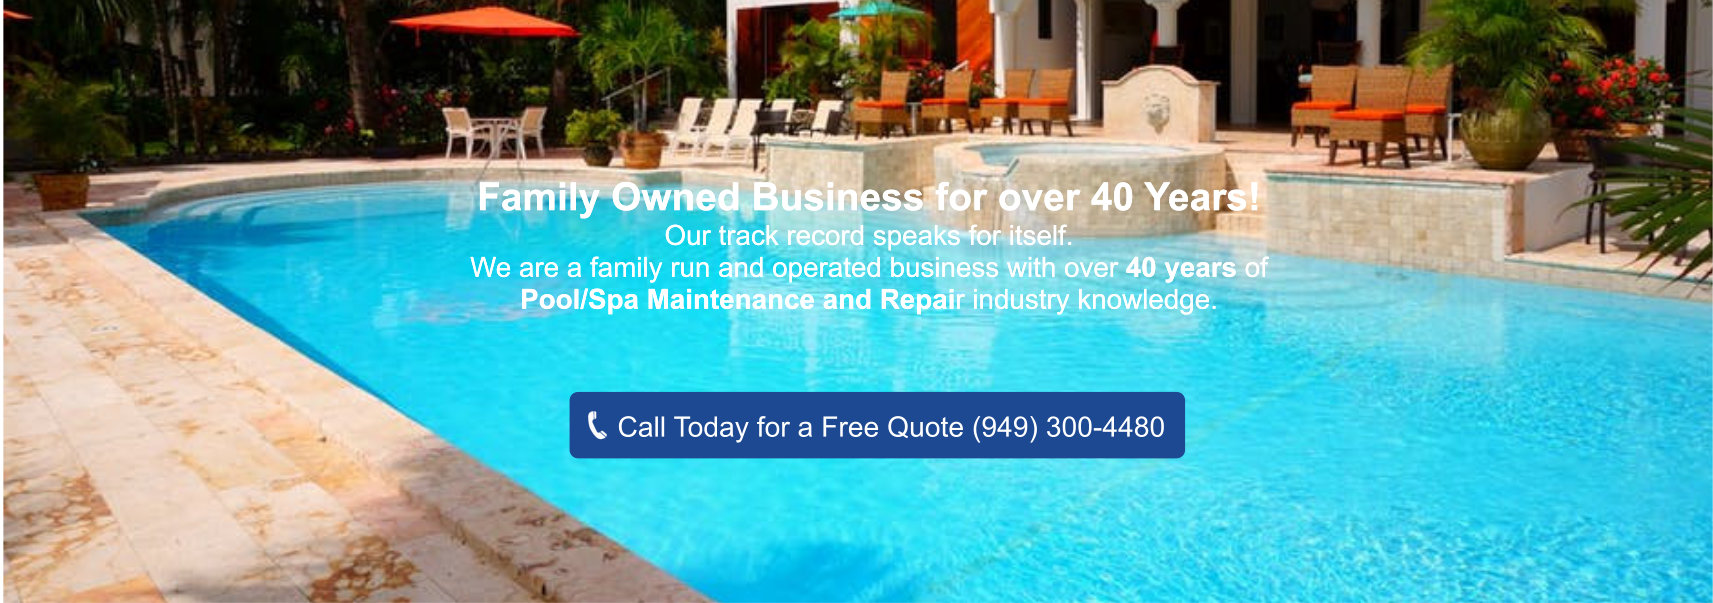 Family Owned Pool/Spa Maintenance and Repair Business for over 40 Years